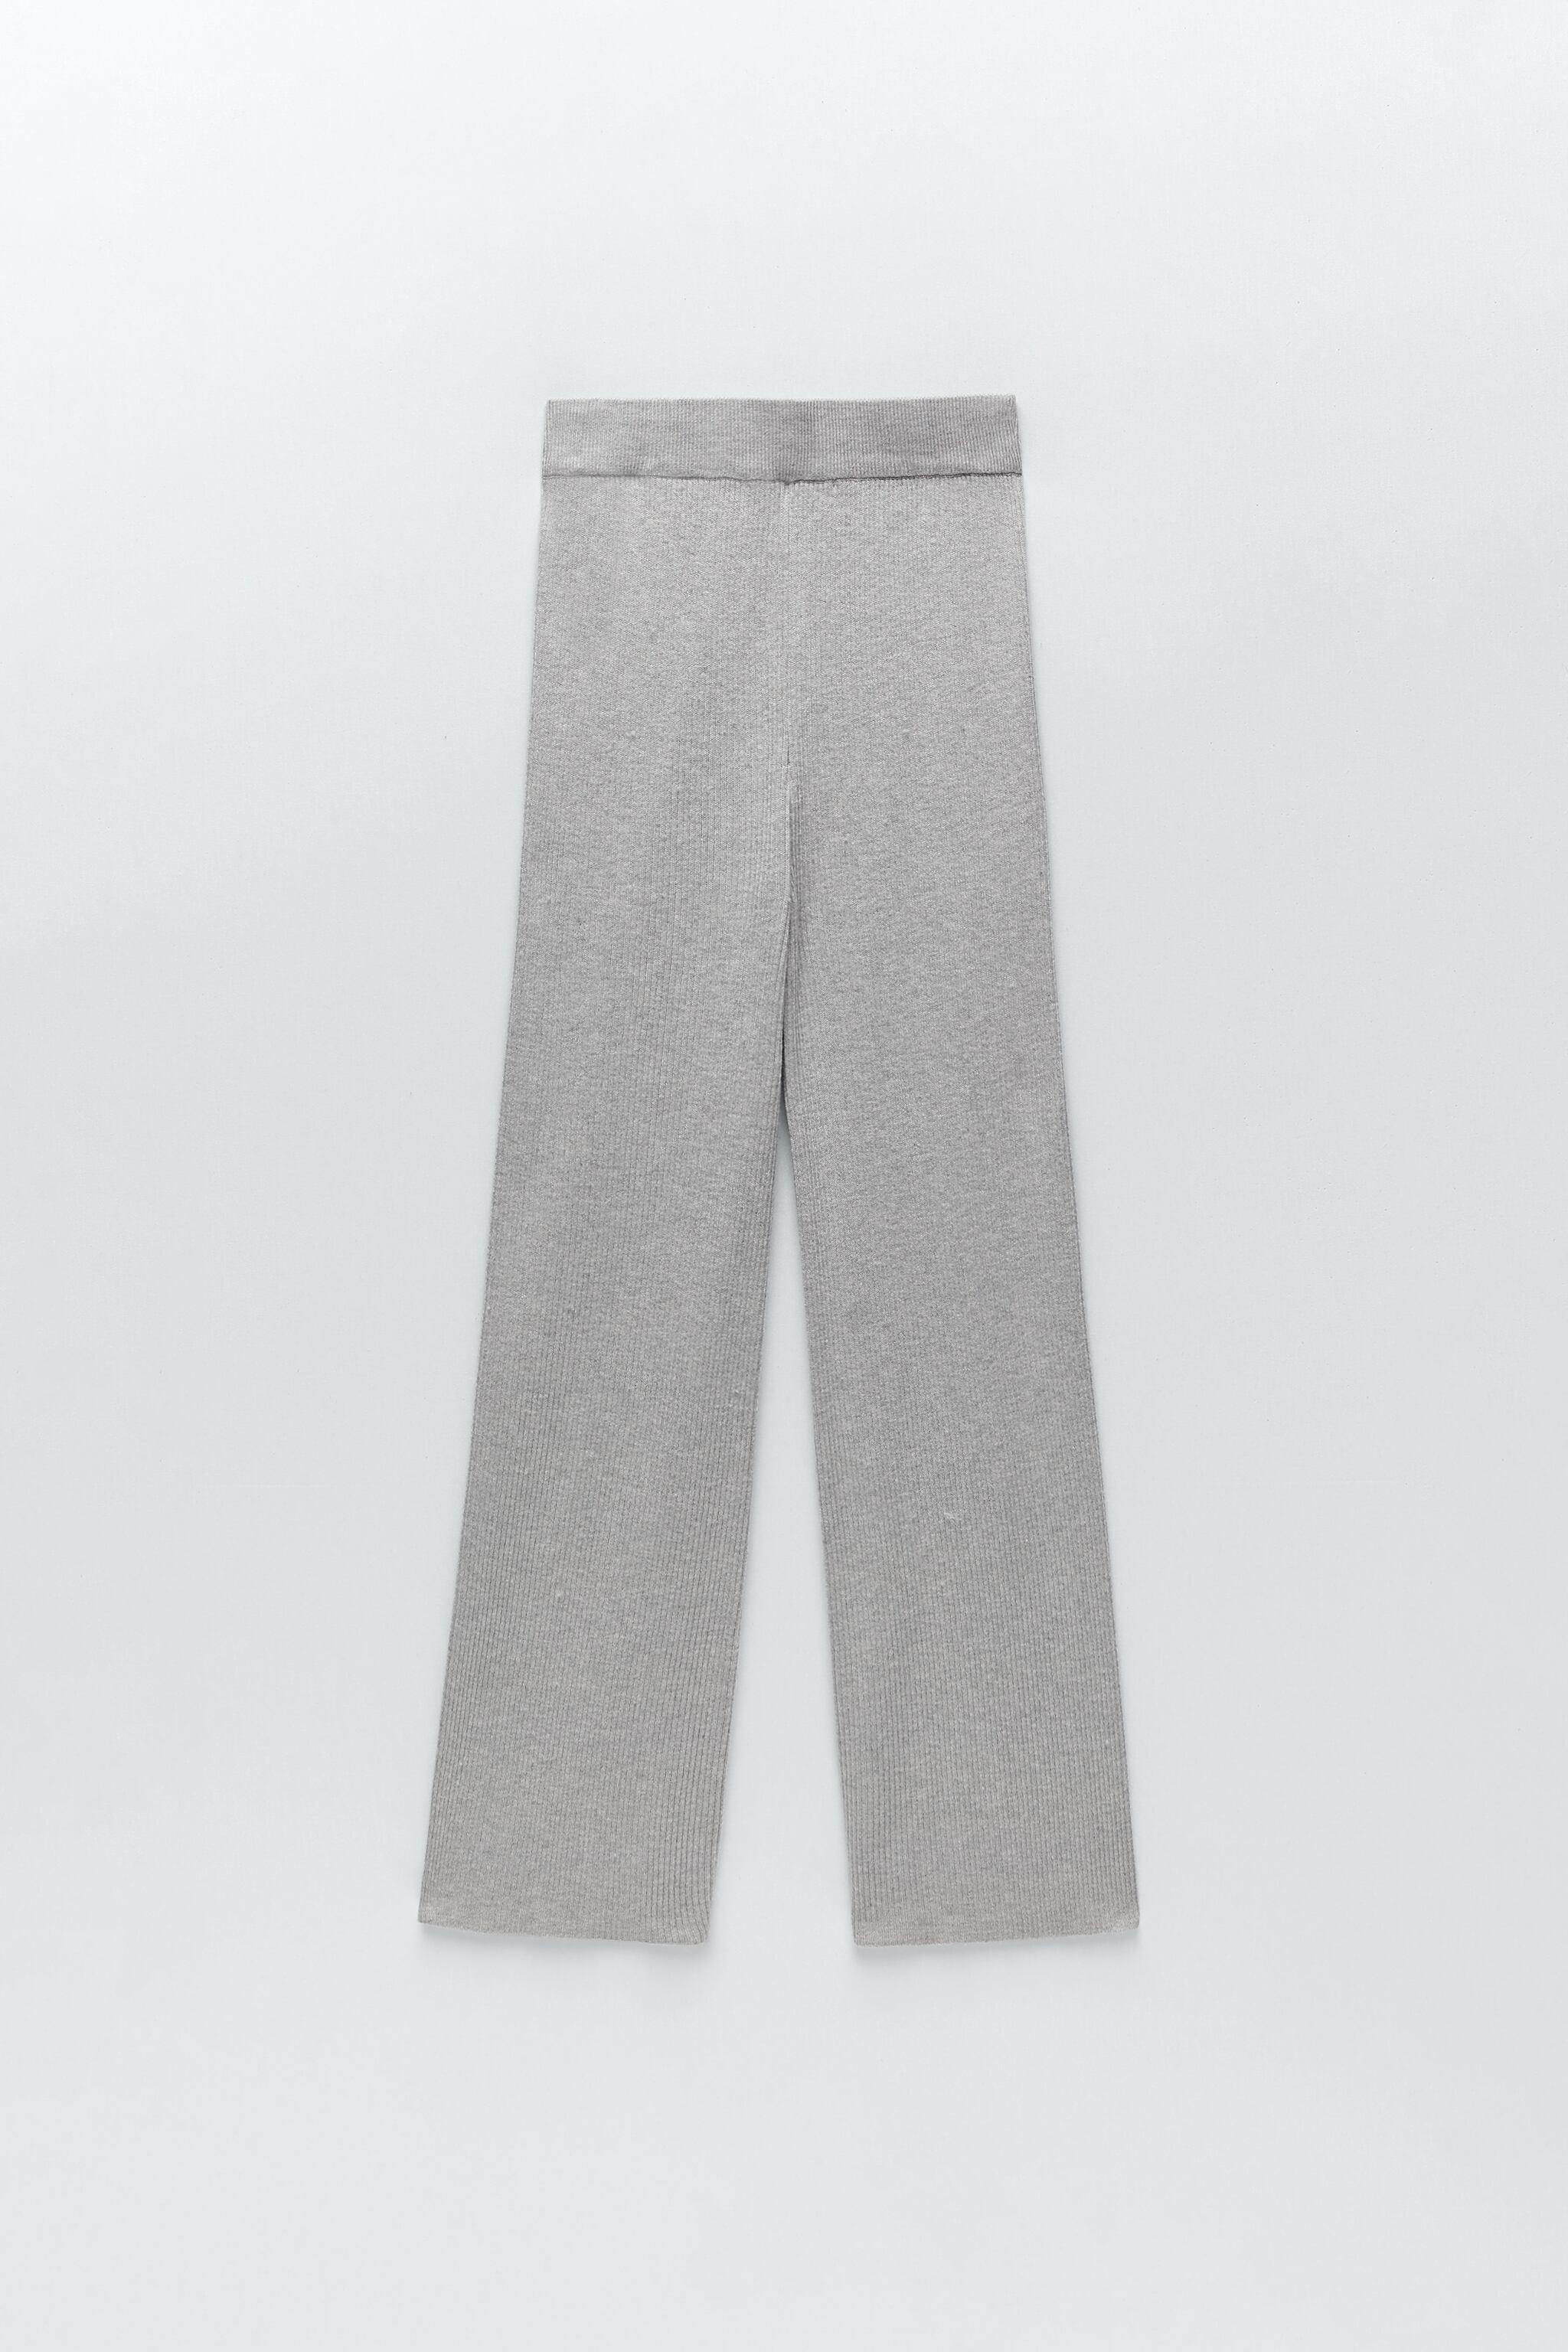 FLARED KNIT PANTS 5